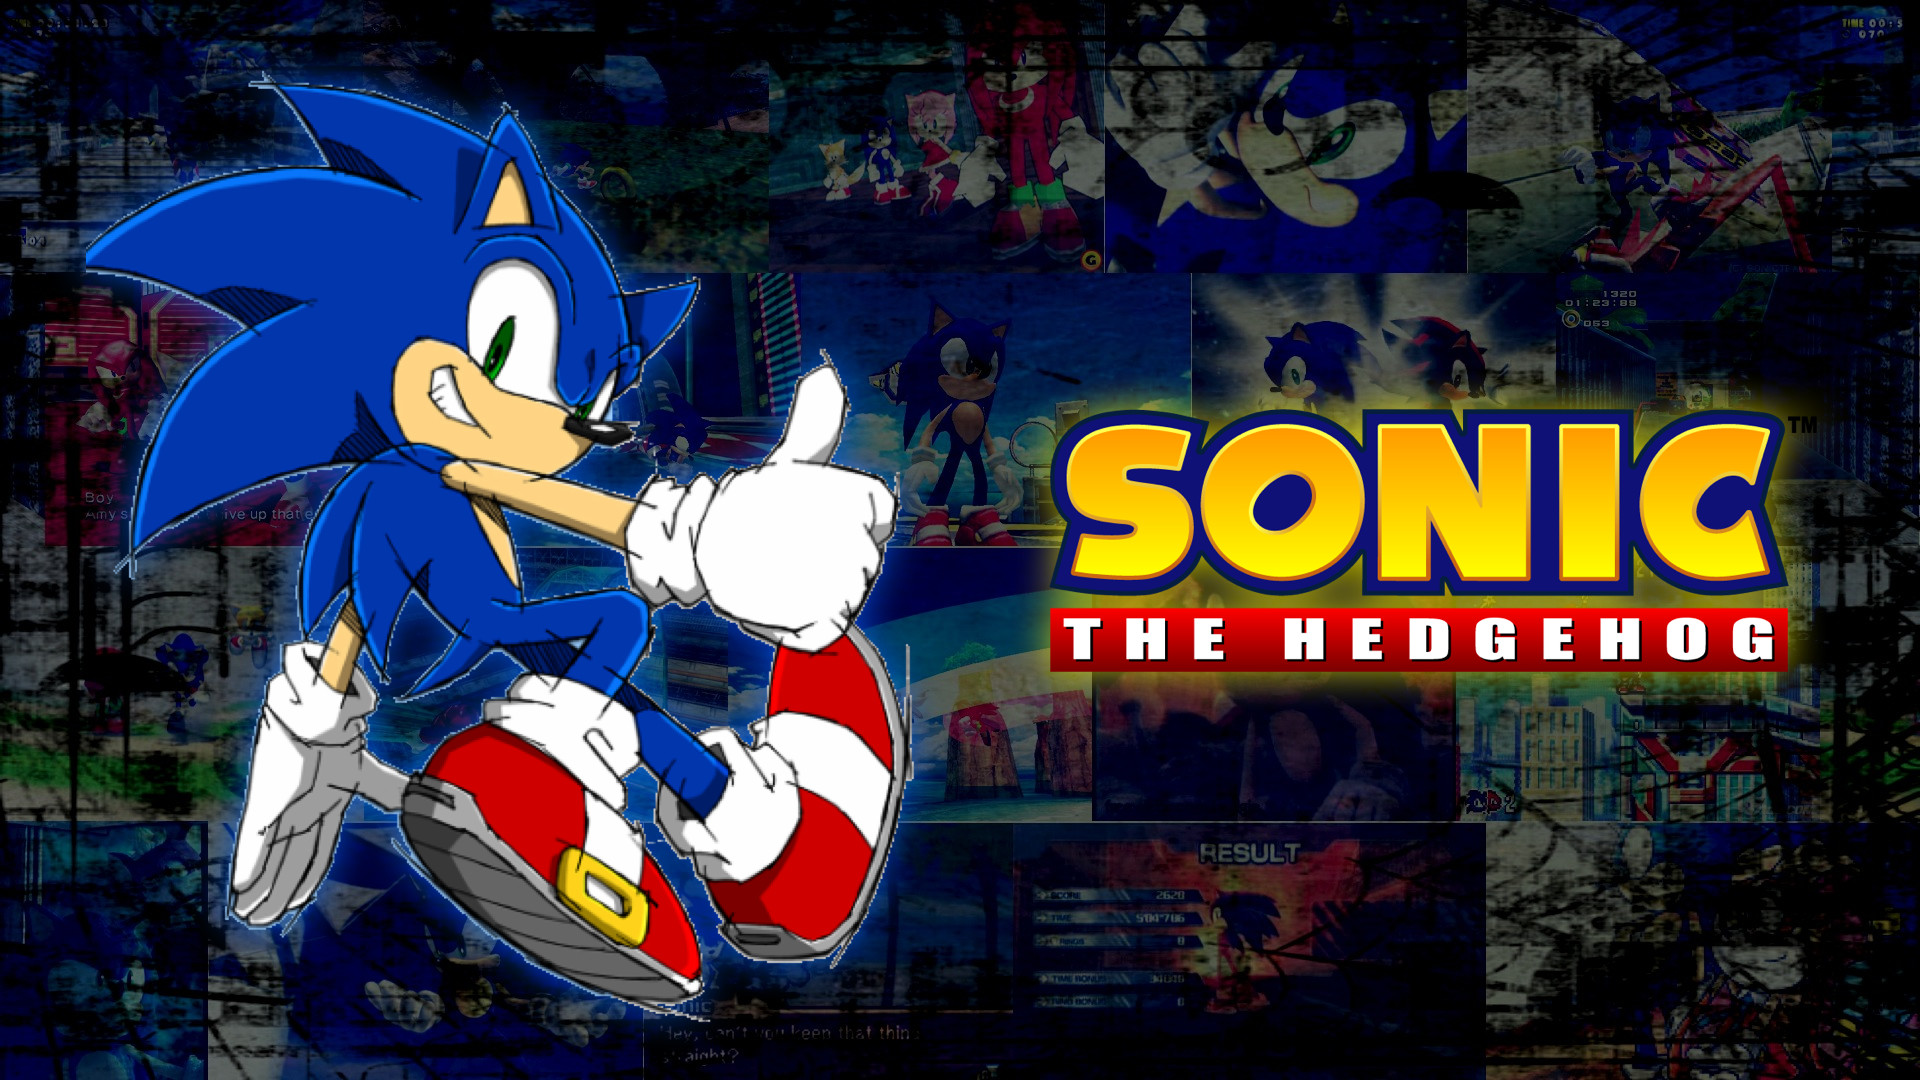 Sonic | Sonic Images, Pictures, Wallpapers on NMgnCP